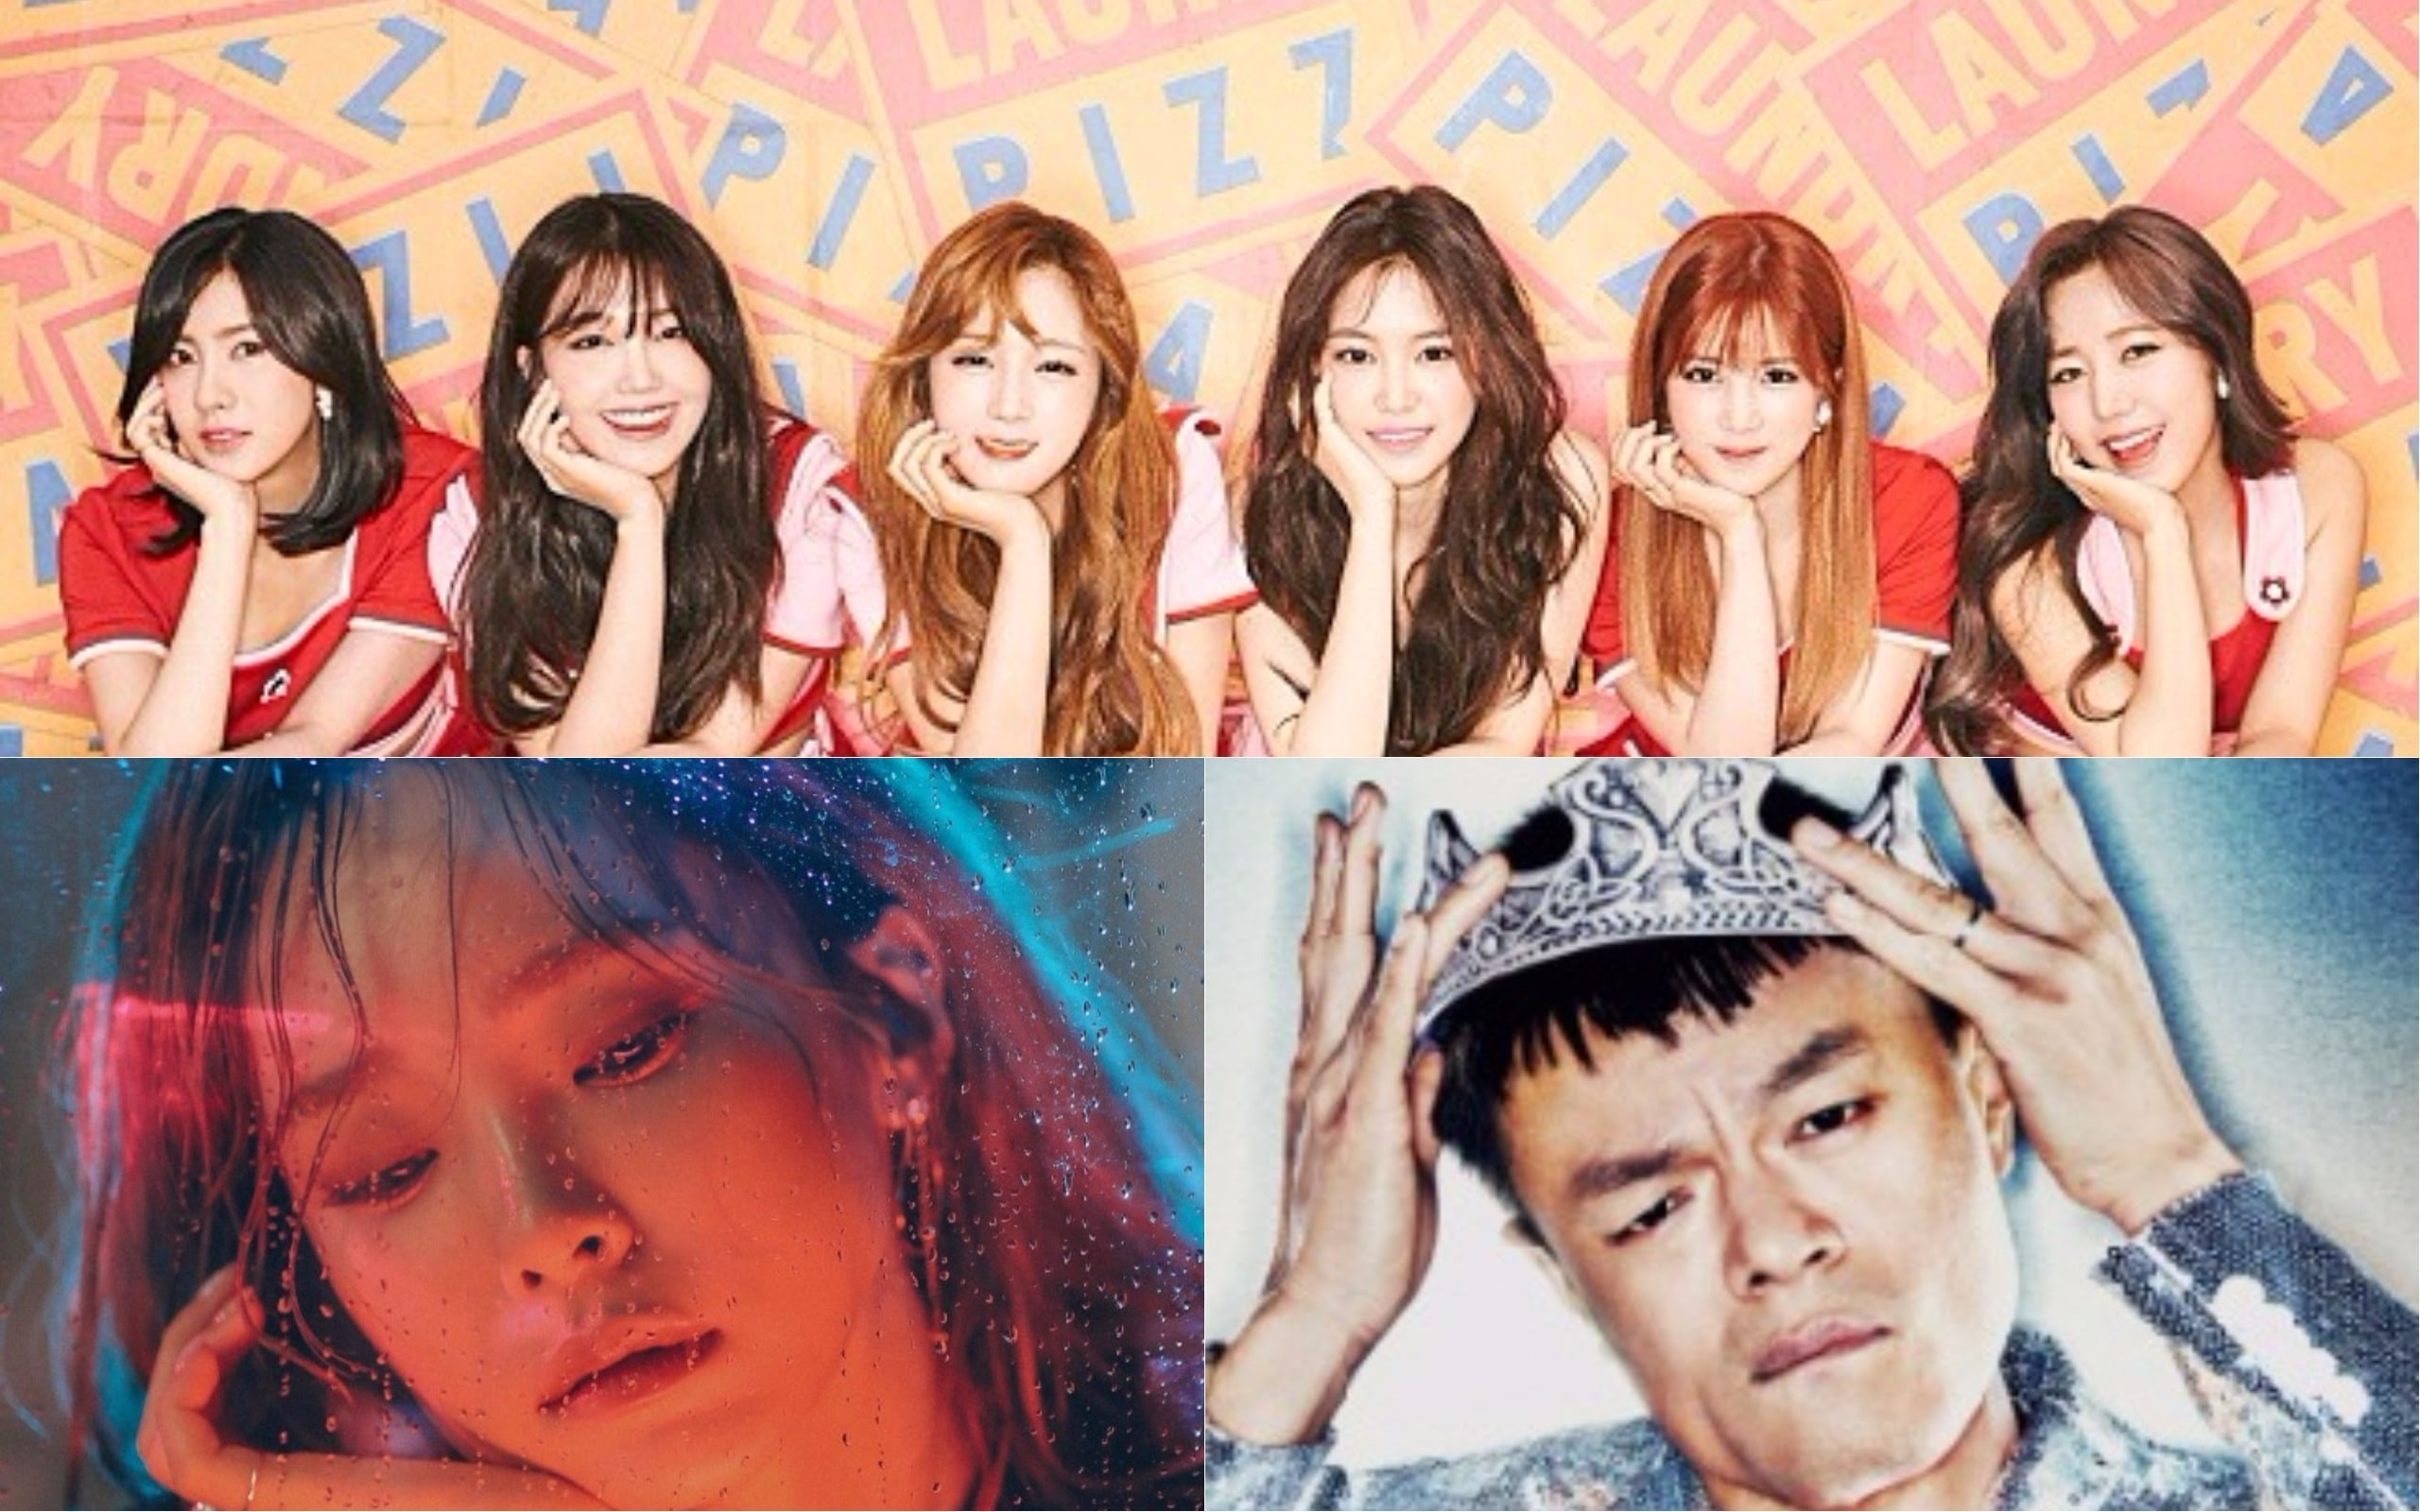 Apink, Heize, And Park Jin Young Hang Out Together After Party People In Instagram Photo